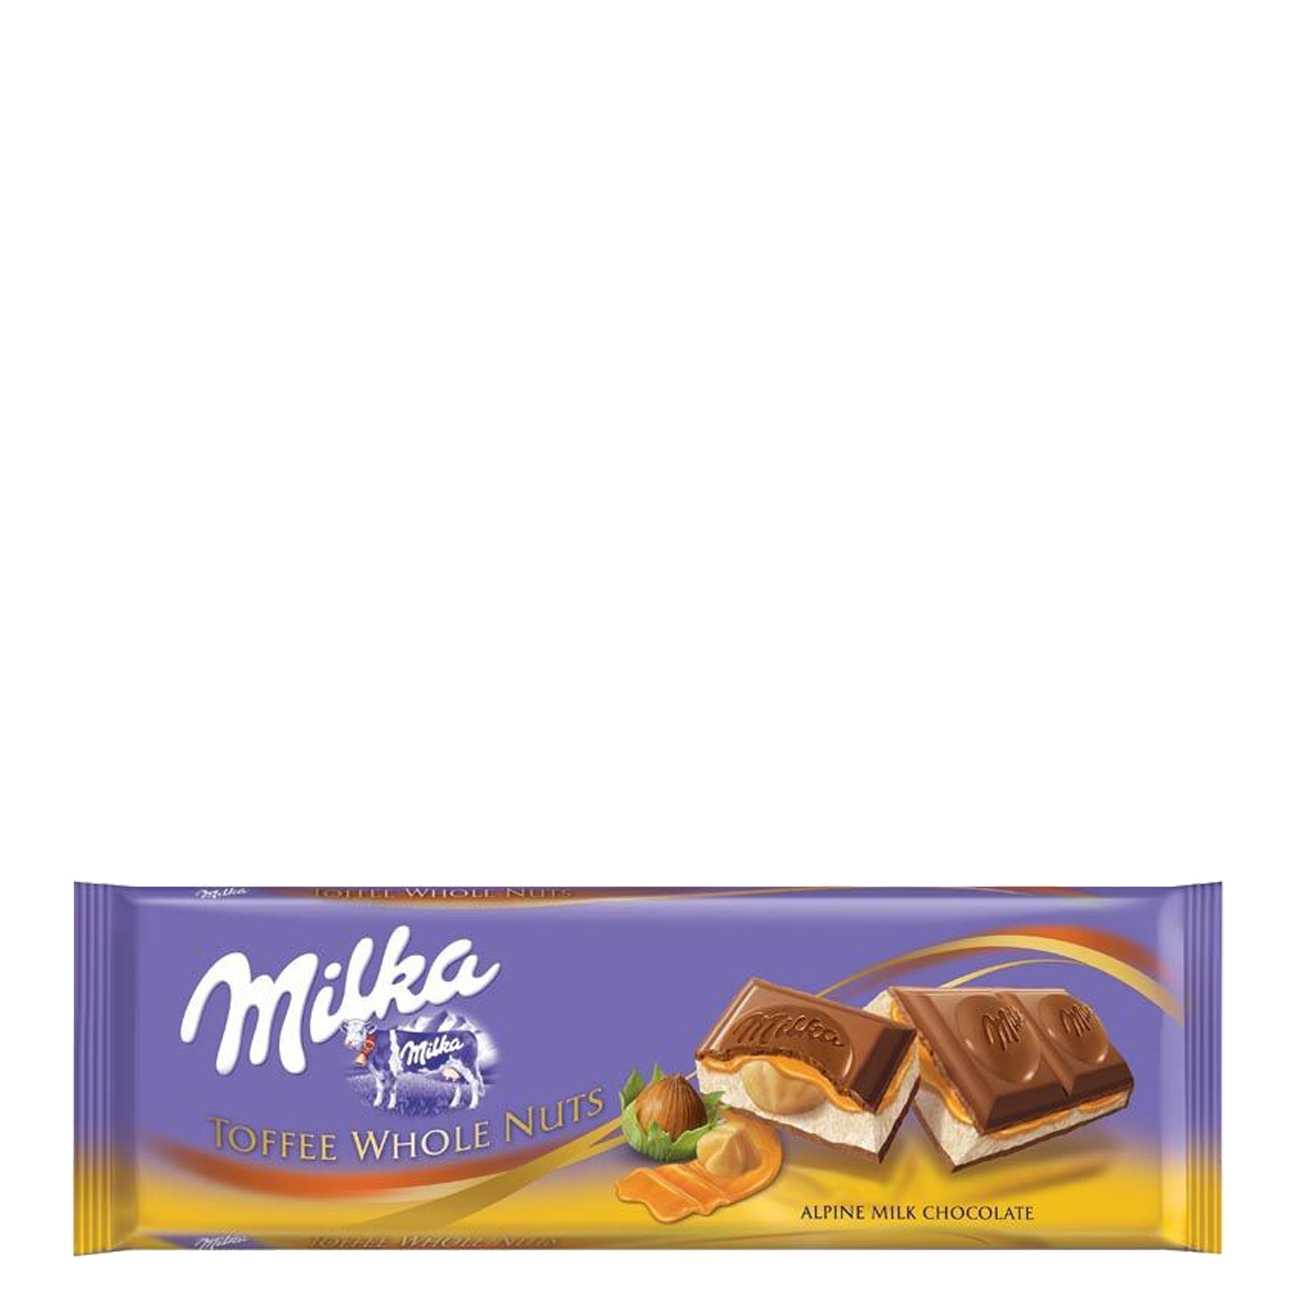 TOFFEE WHOLE NUTS 300 G